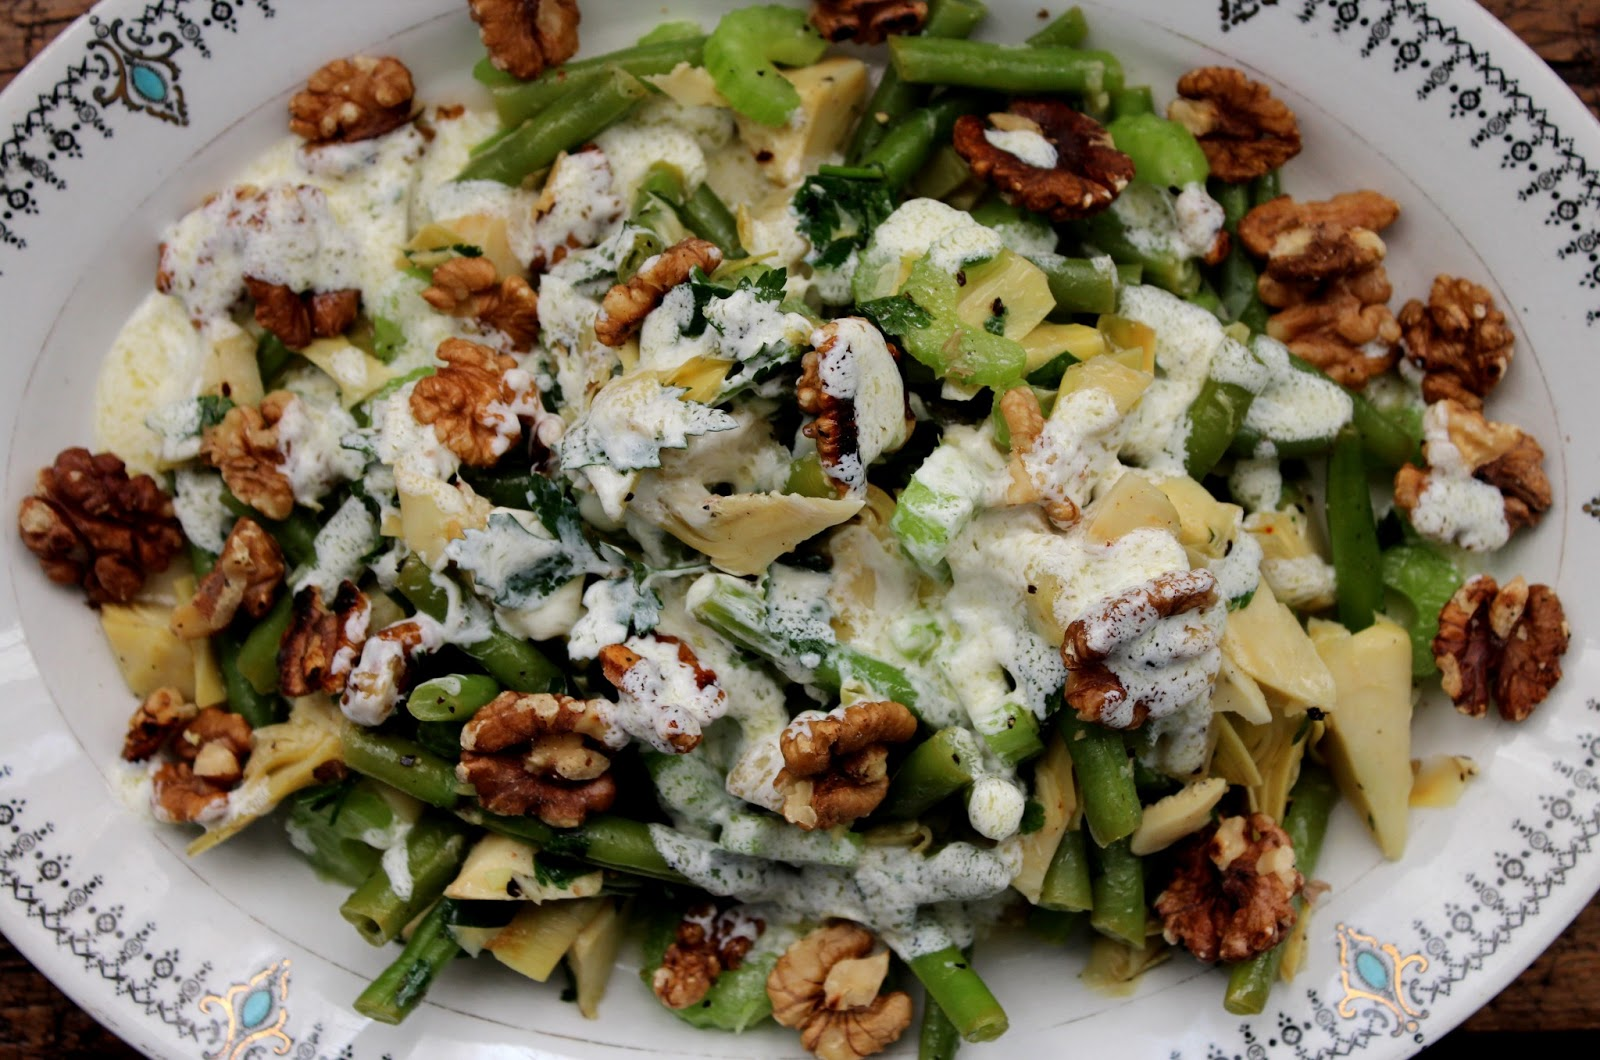 ... and green bean salad with toasted walnuts and lemon yoghurt dressing